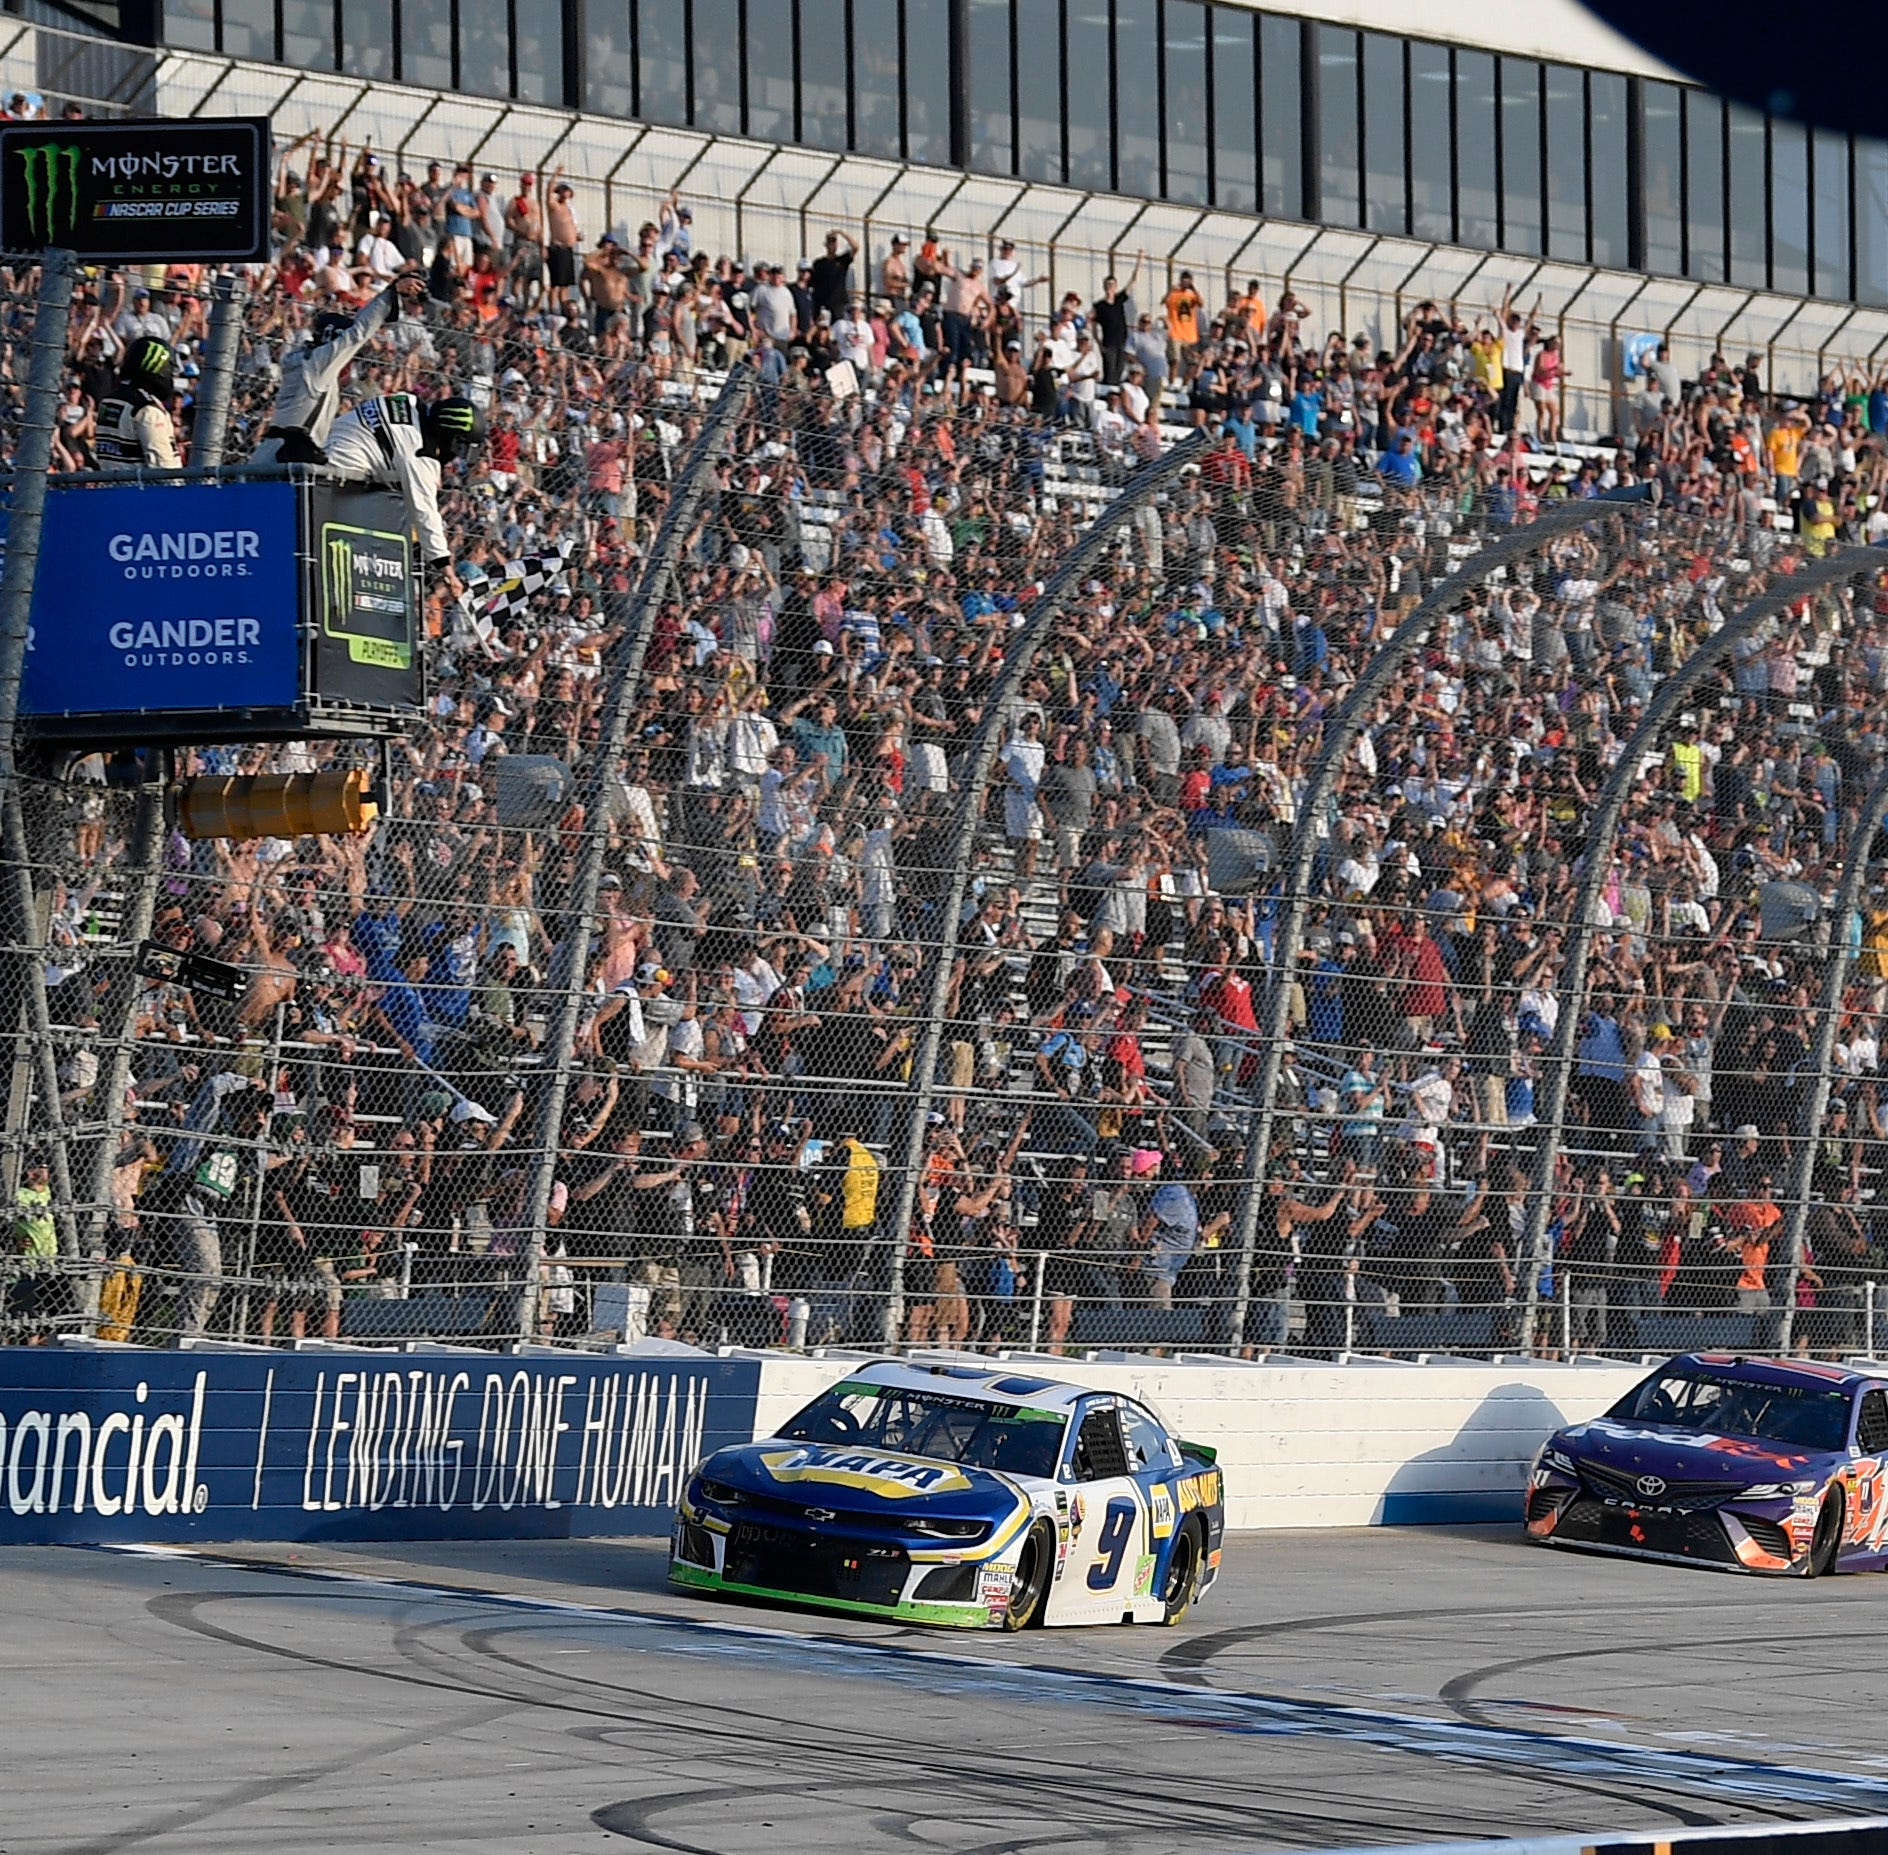 On 50th anniversary, NASCAR has great history but uncertain future at Dover